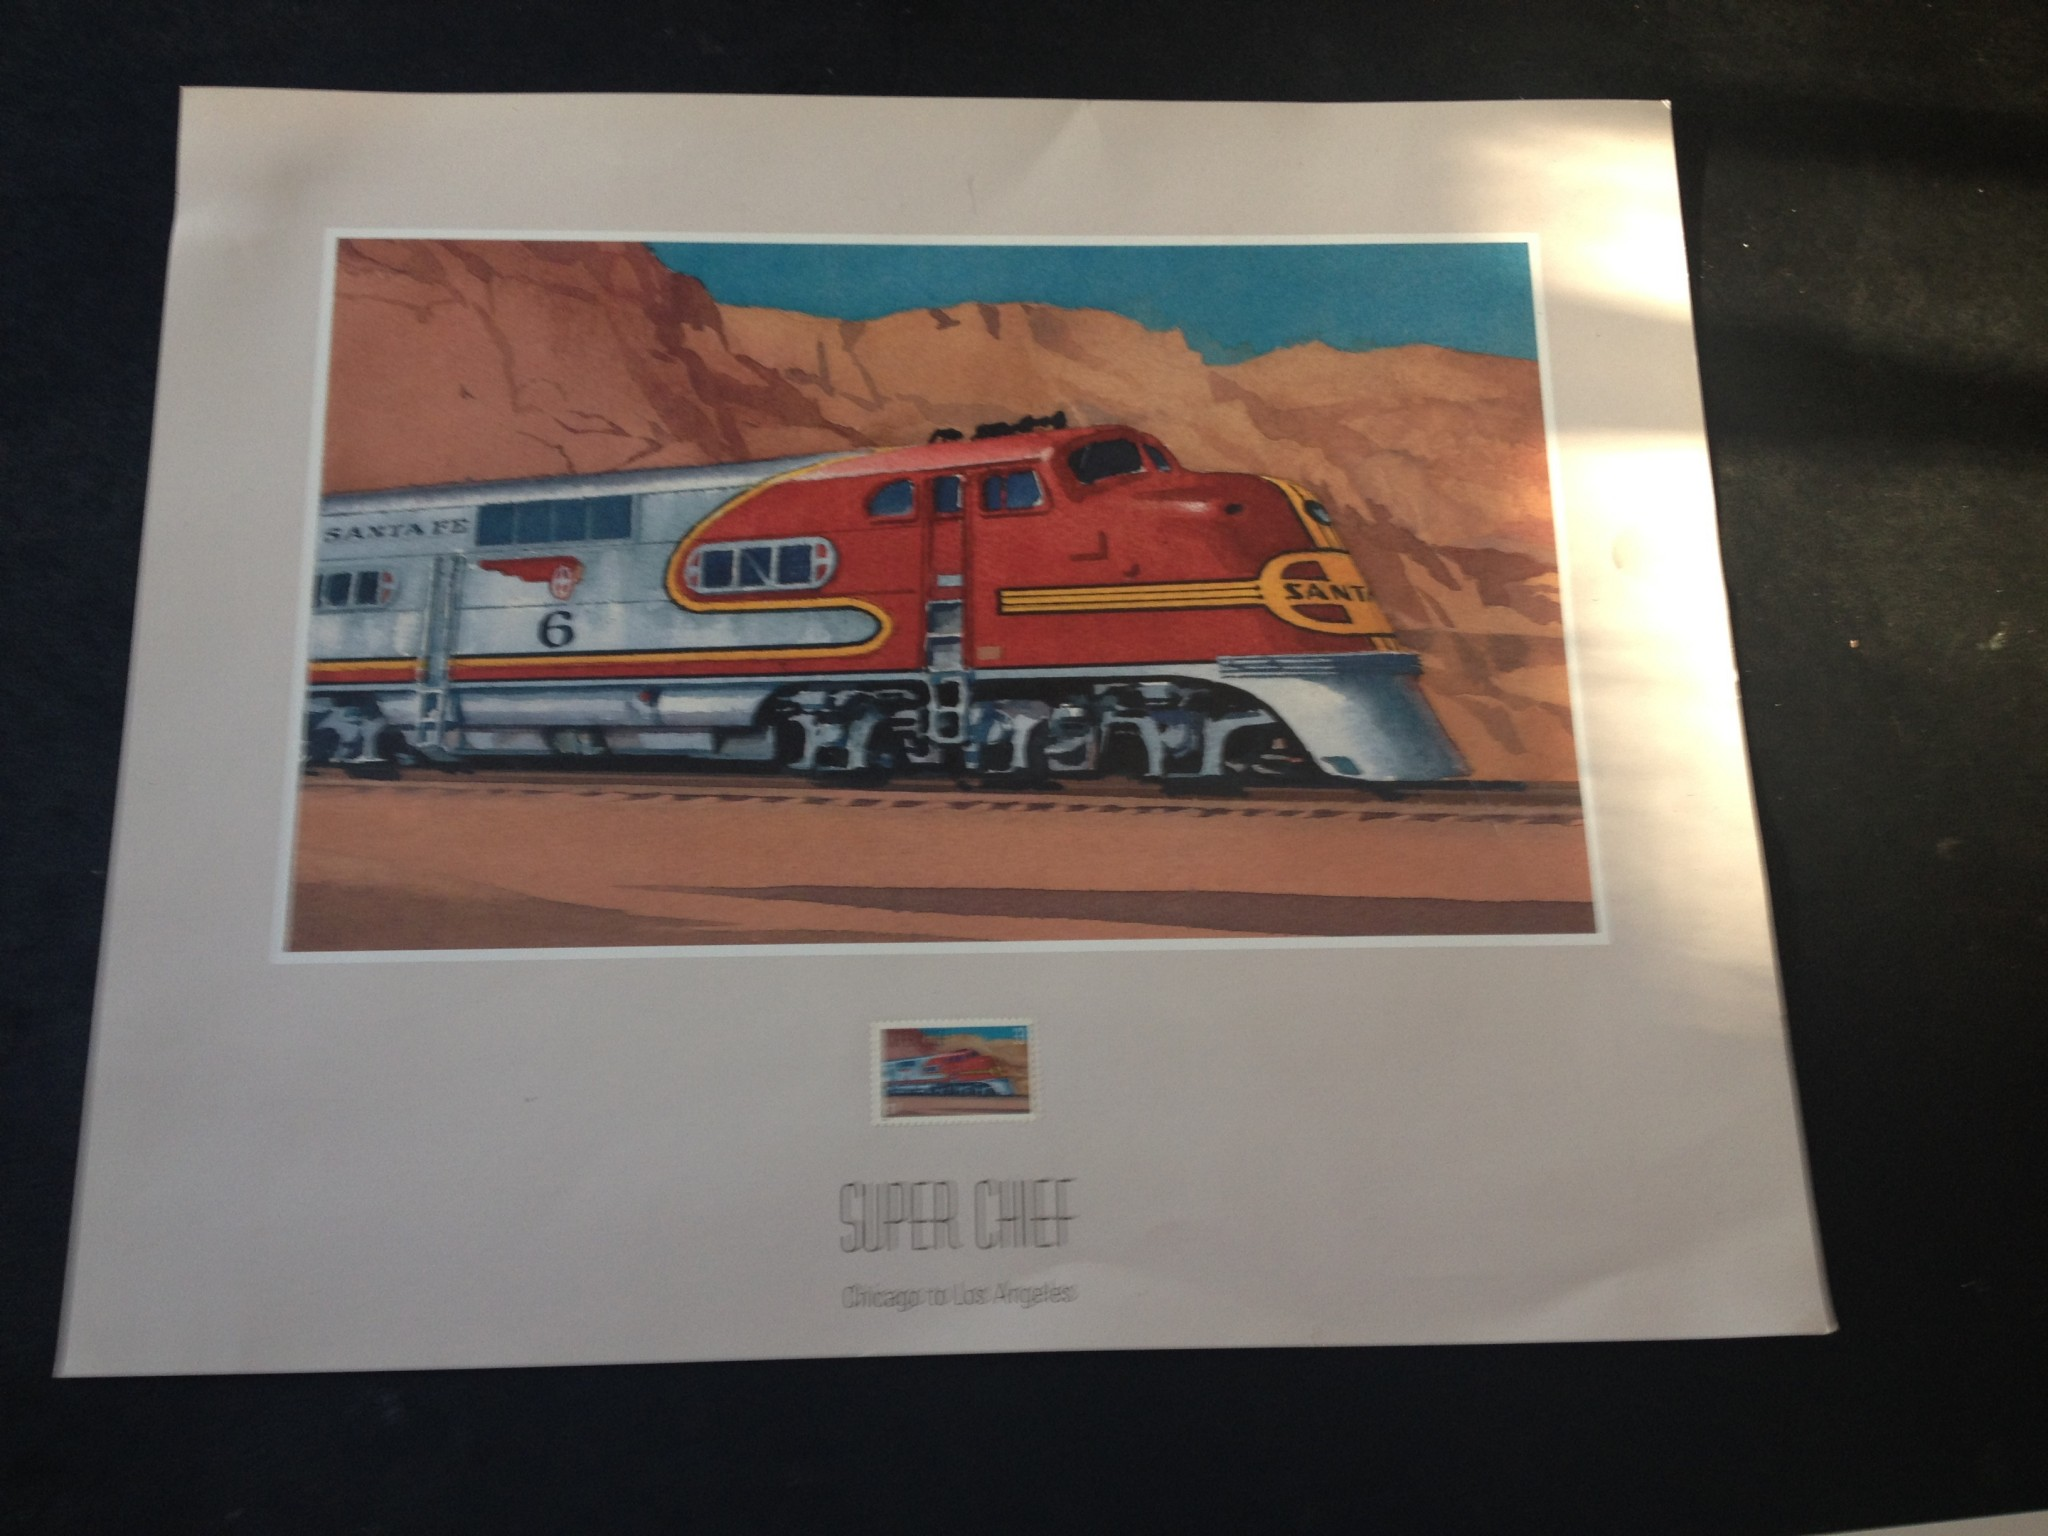 SUPER CHIEF TRAIN PRINT STAMP by TED ROSE TRAIN RAILROAD PRINT W/STAMP